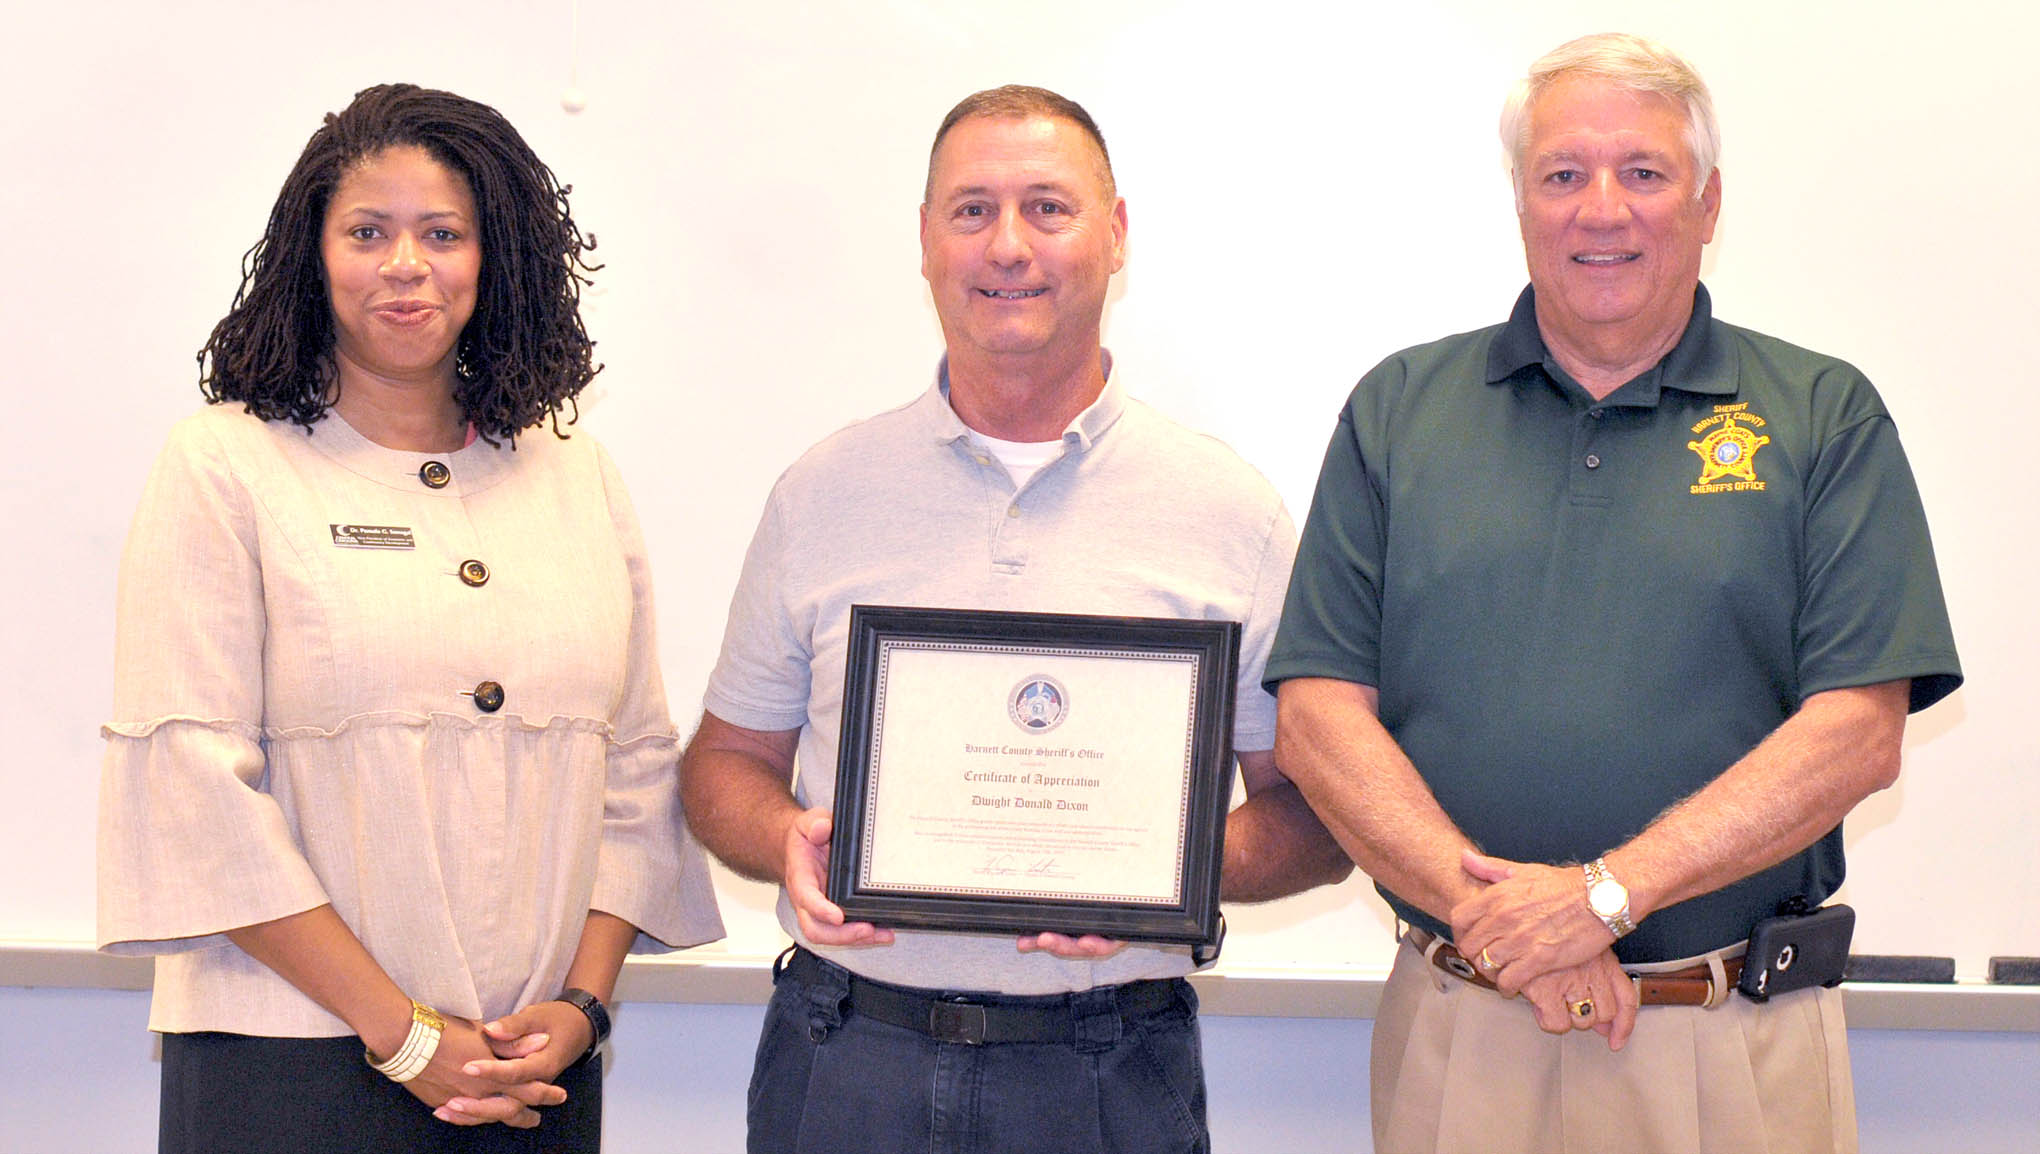 Read the full story, CCCC's Dixon receives salute from Harnett Sheriff's Office